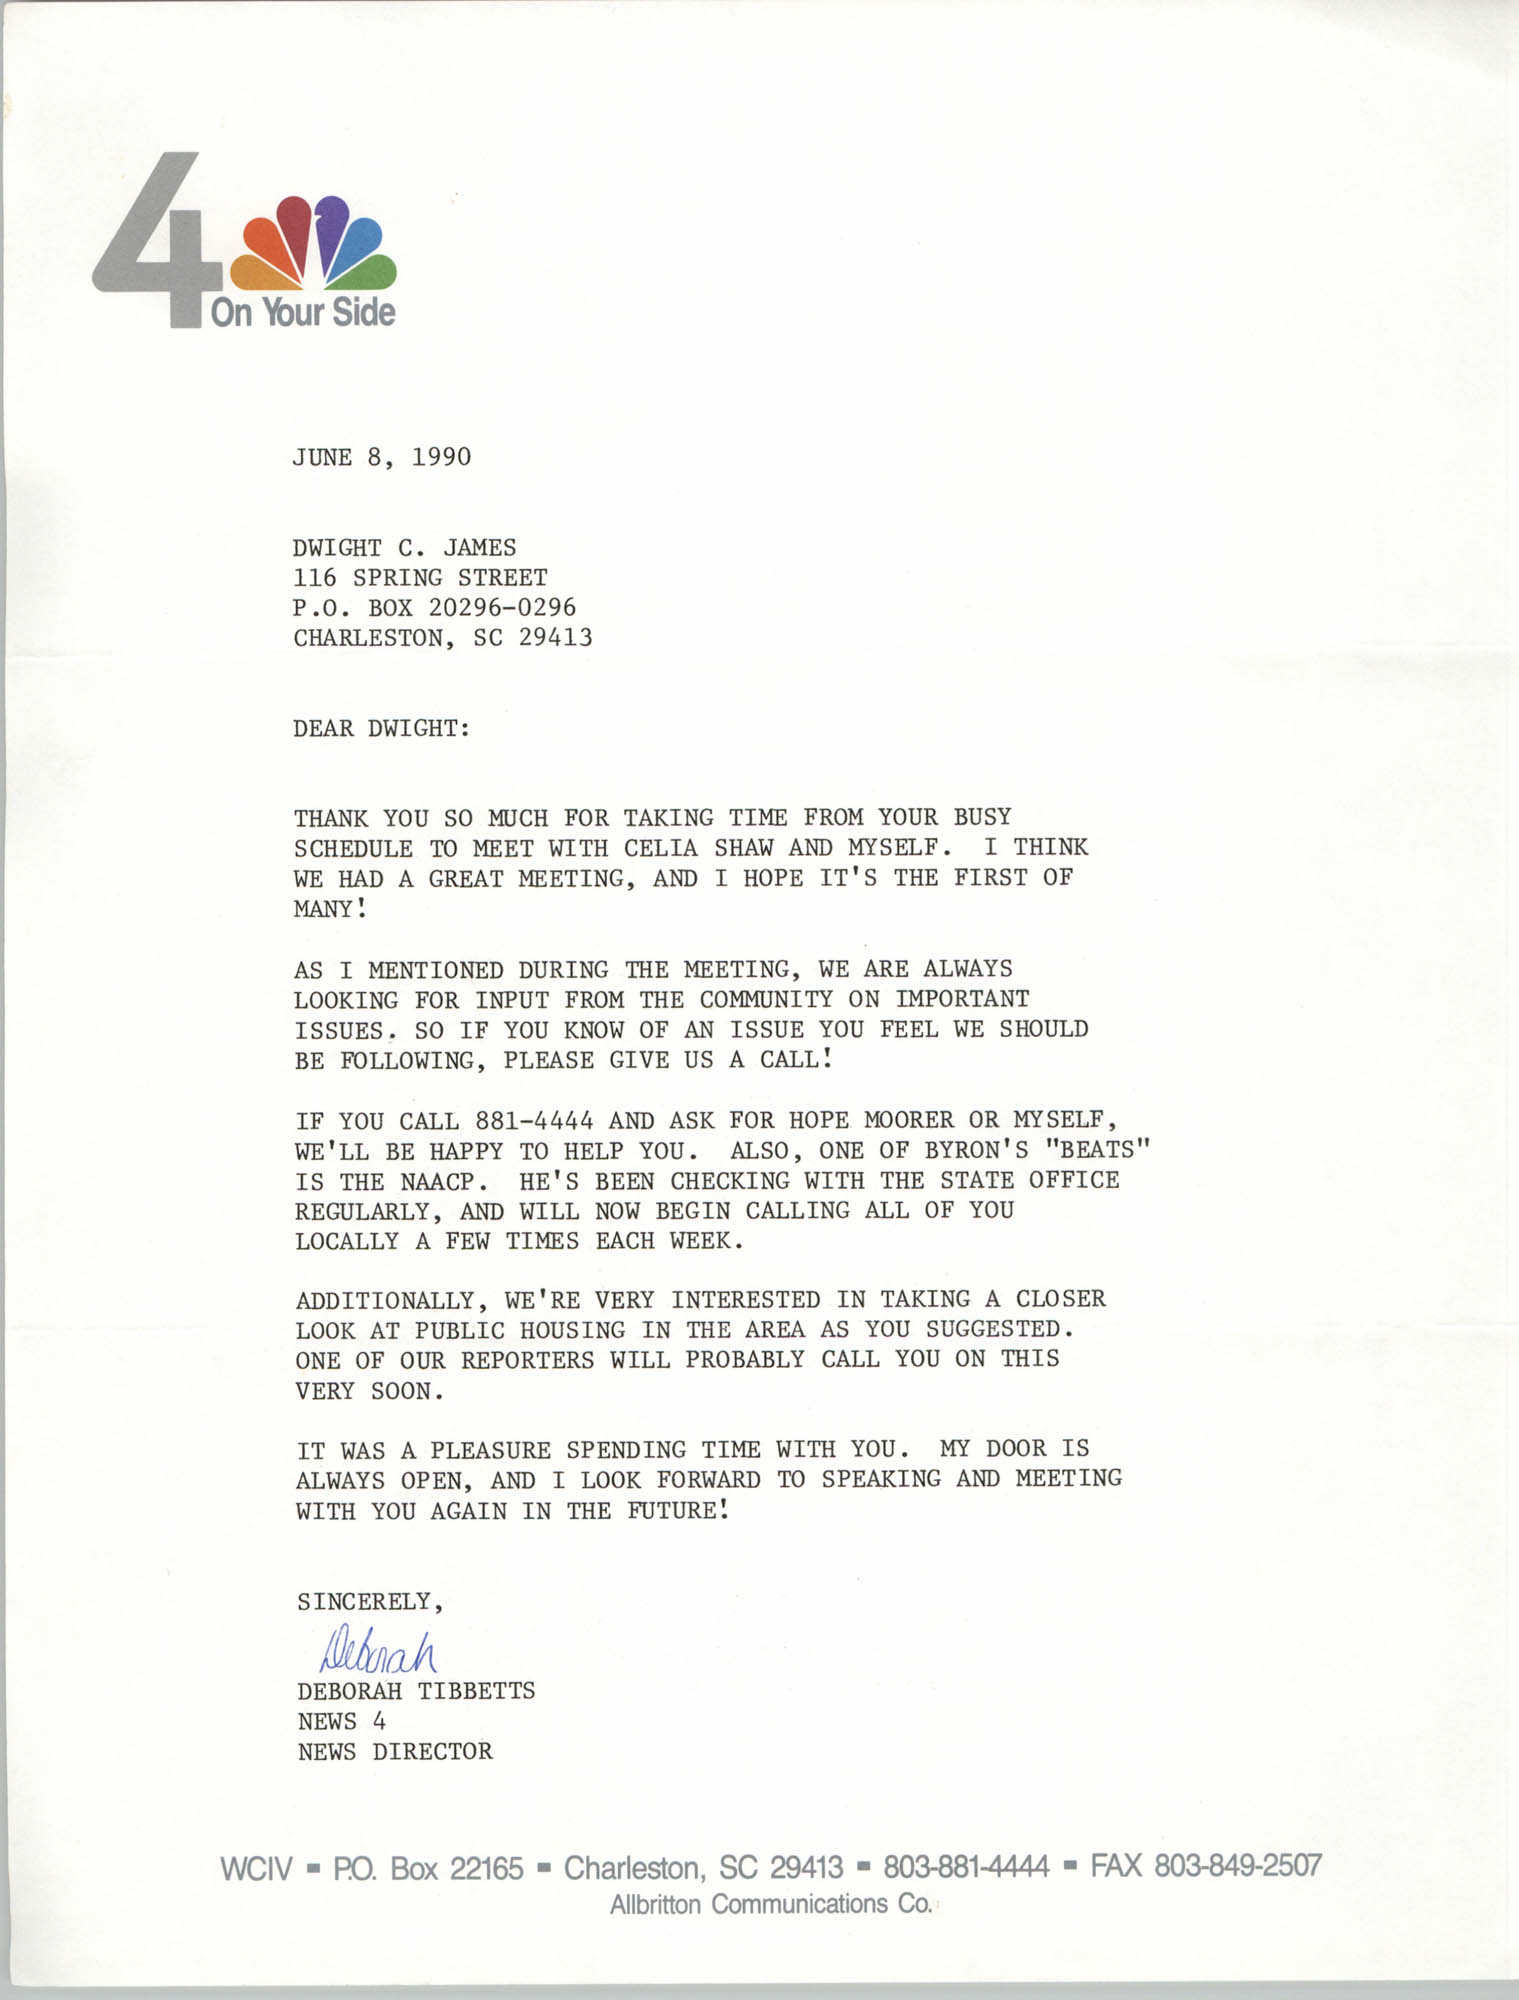 Letter from Deborah Tibbetts to Dwight C. James, June 8, 1990